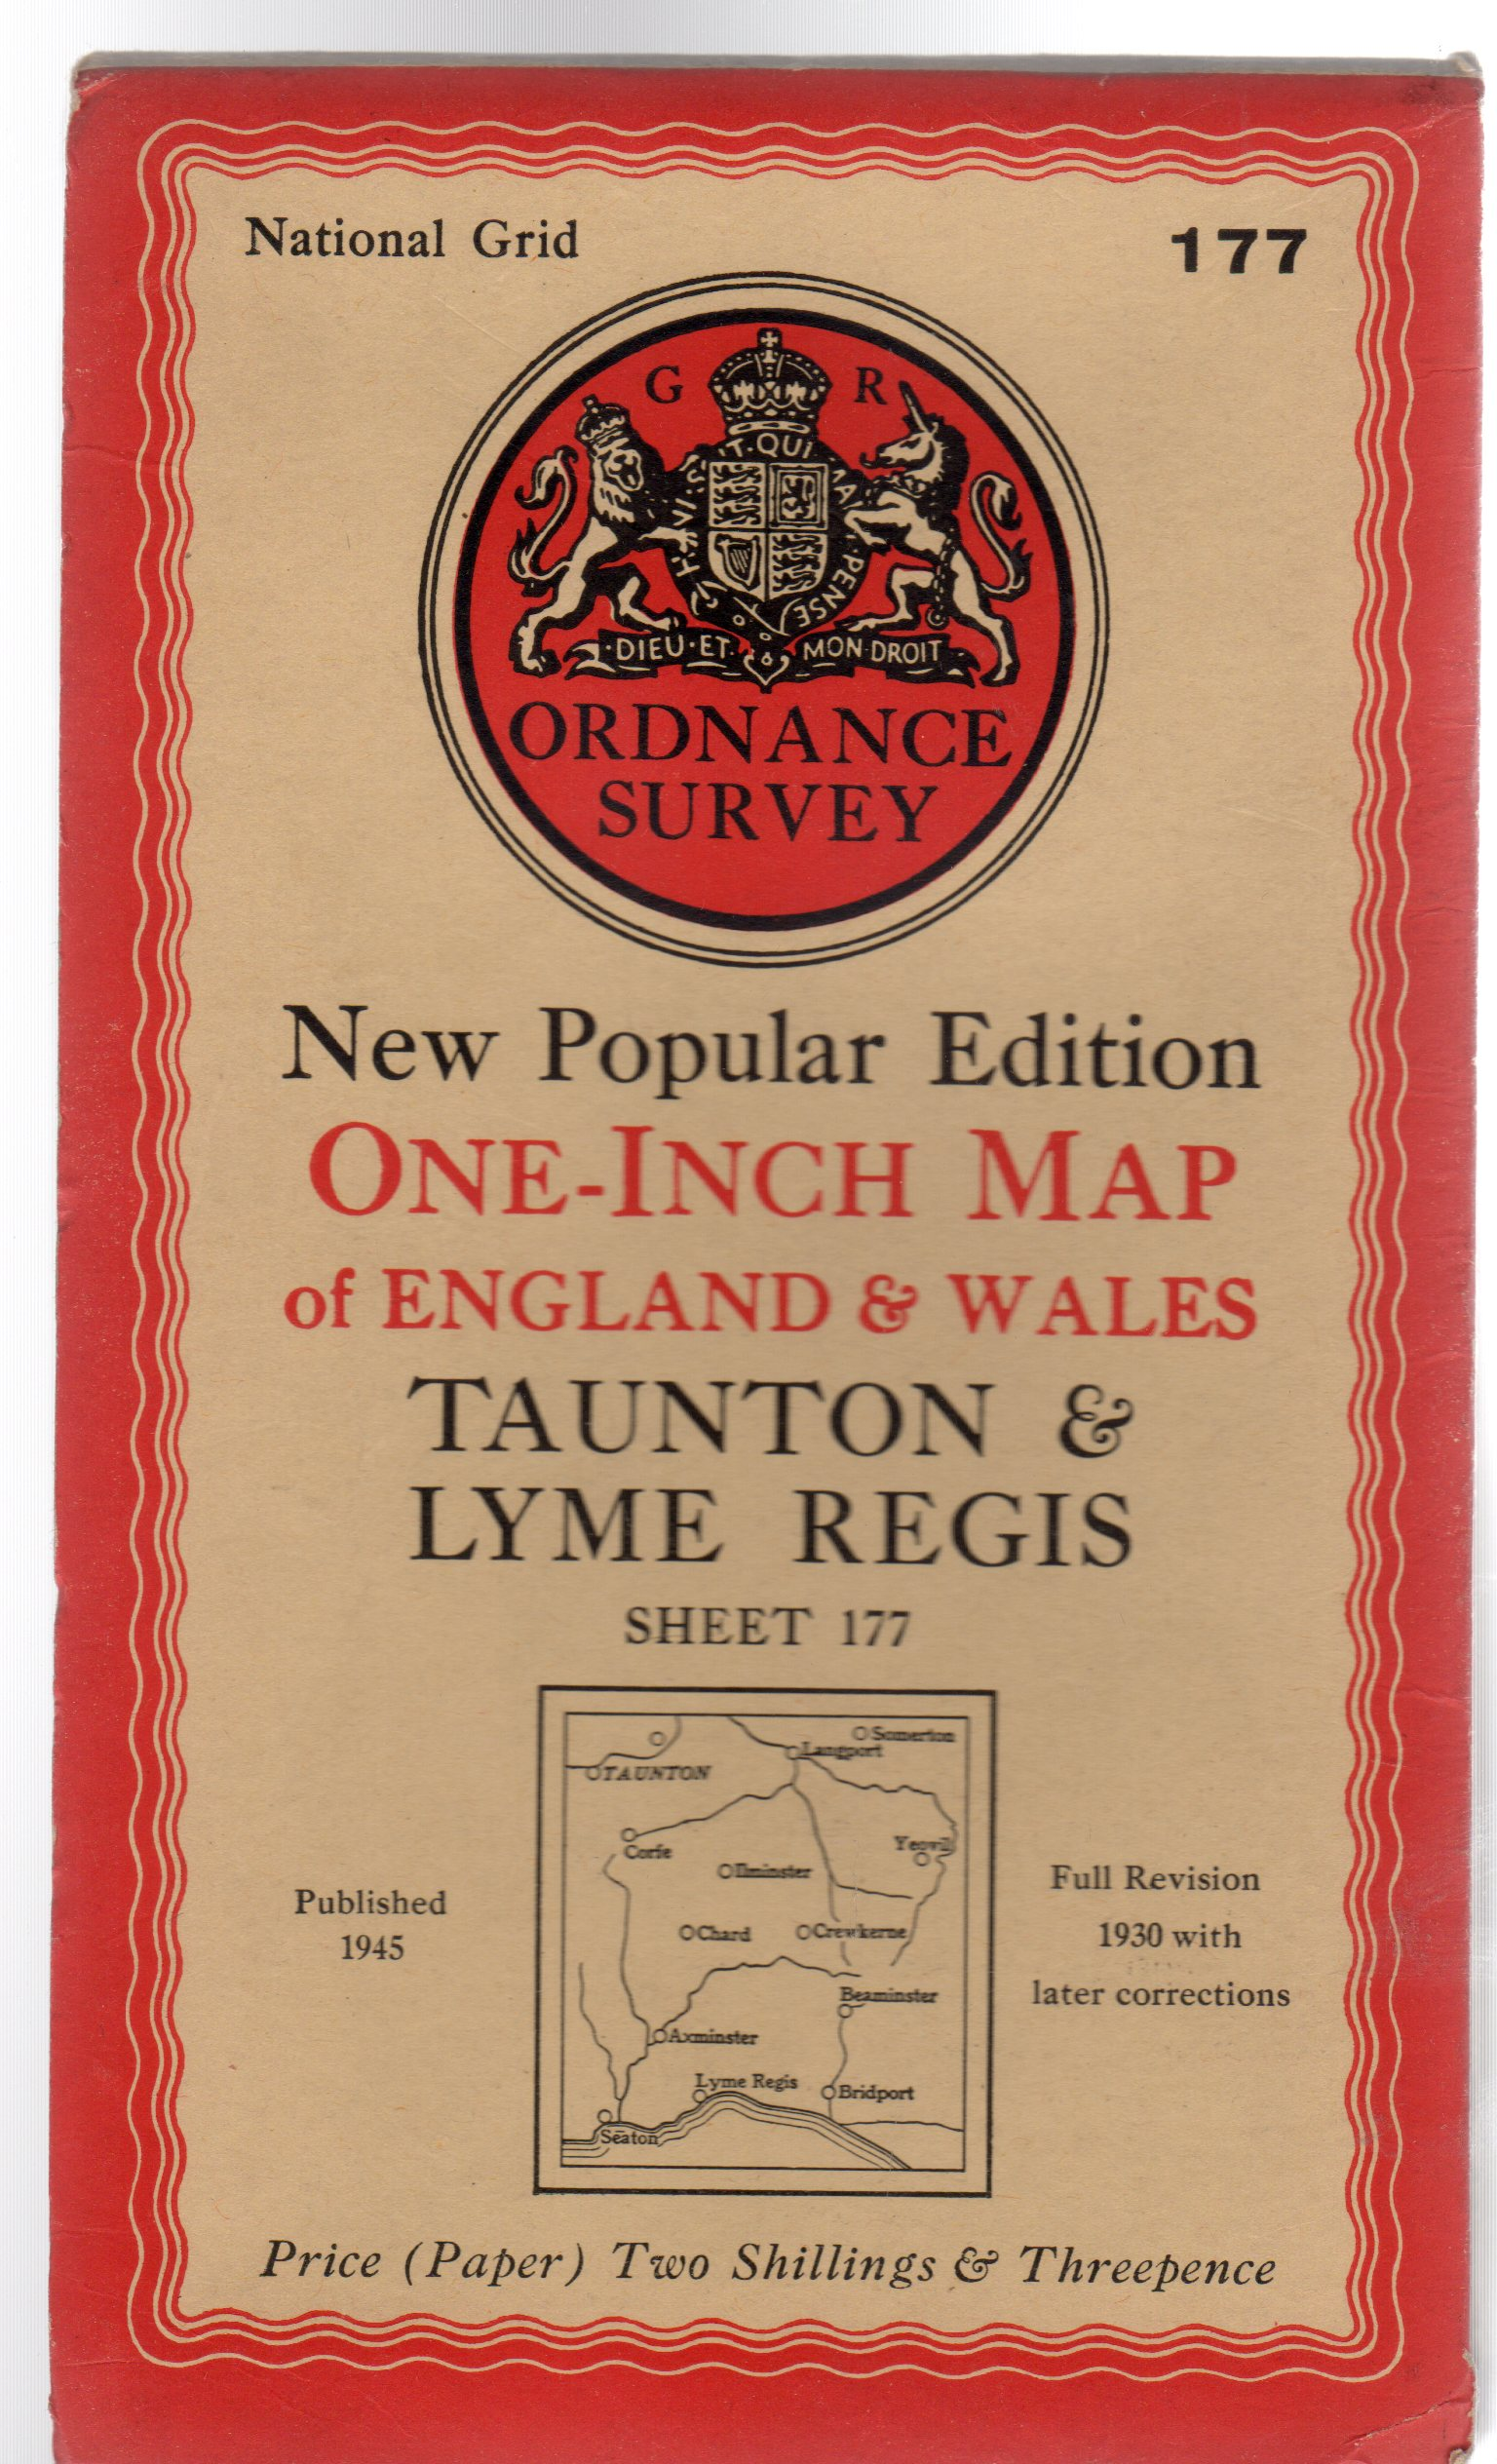 Image for Ordnance Survey  New Popular Edition One-Inch Map of England & Wales Sheet 177 Taunton & Lyme Regis